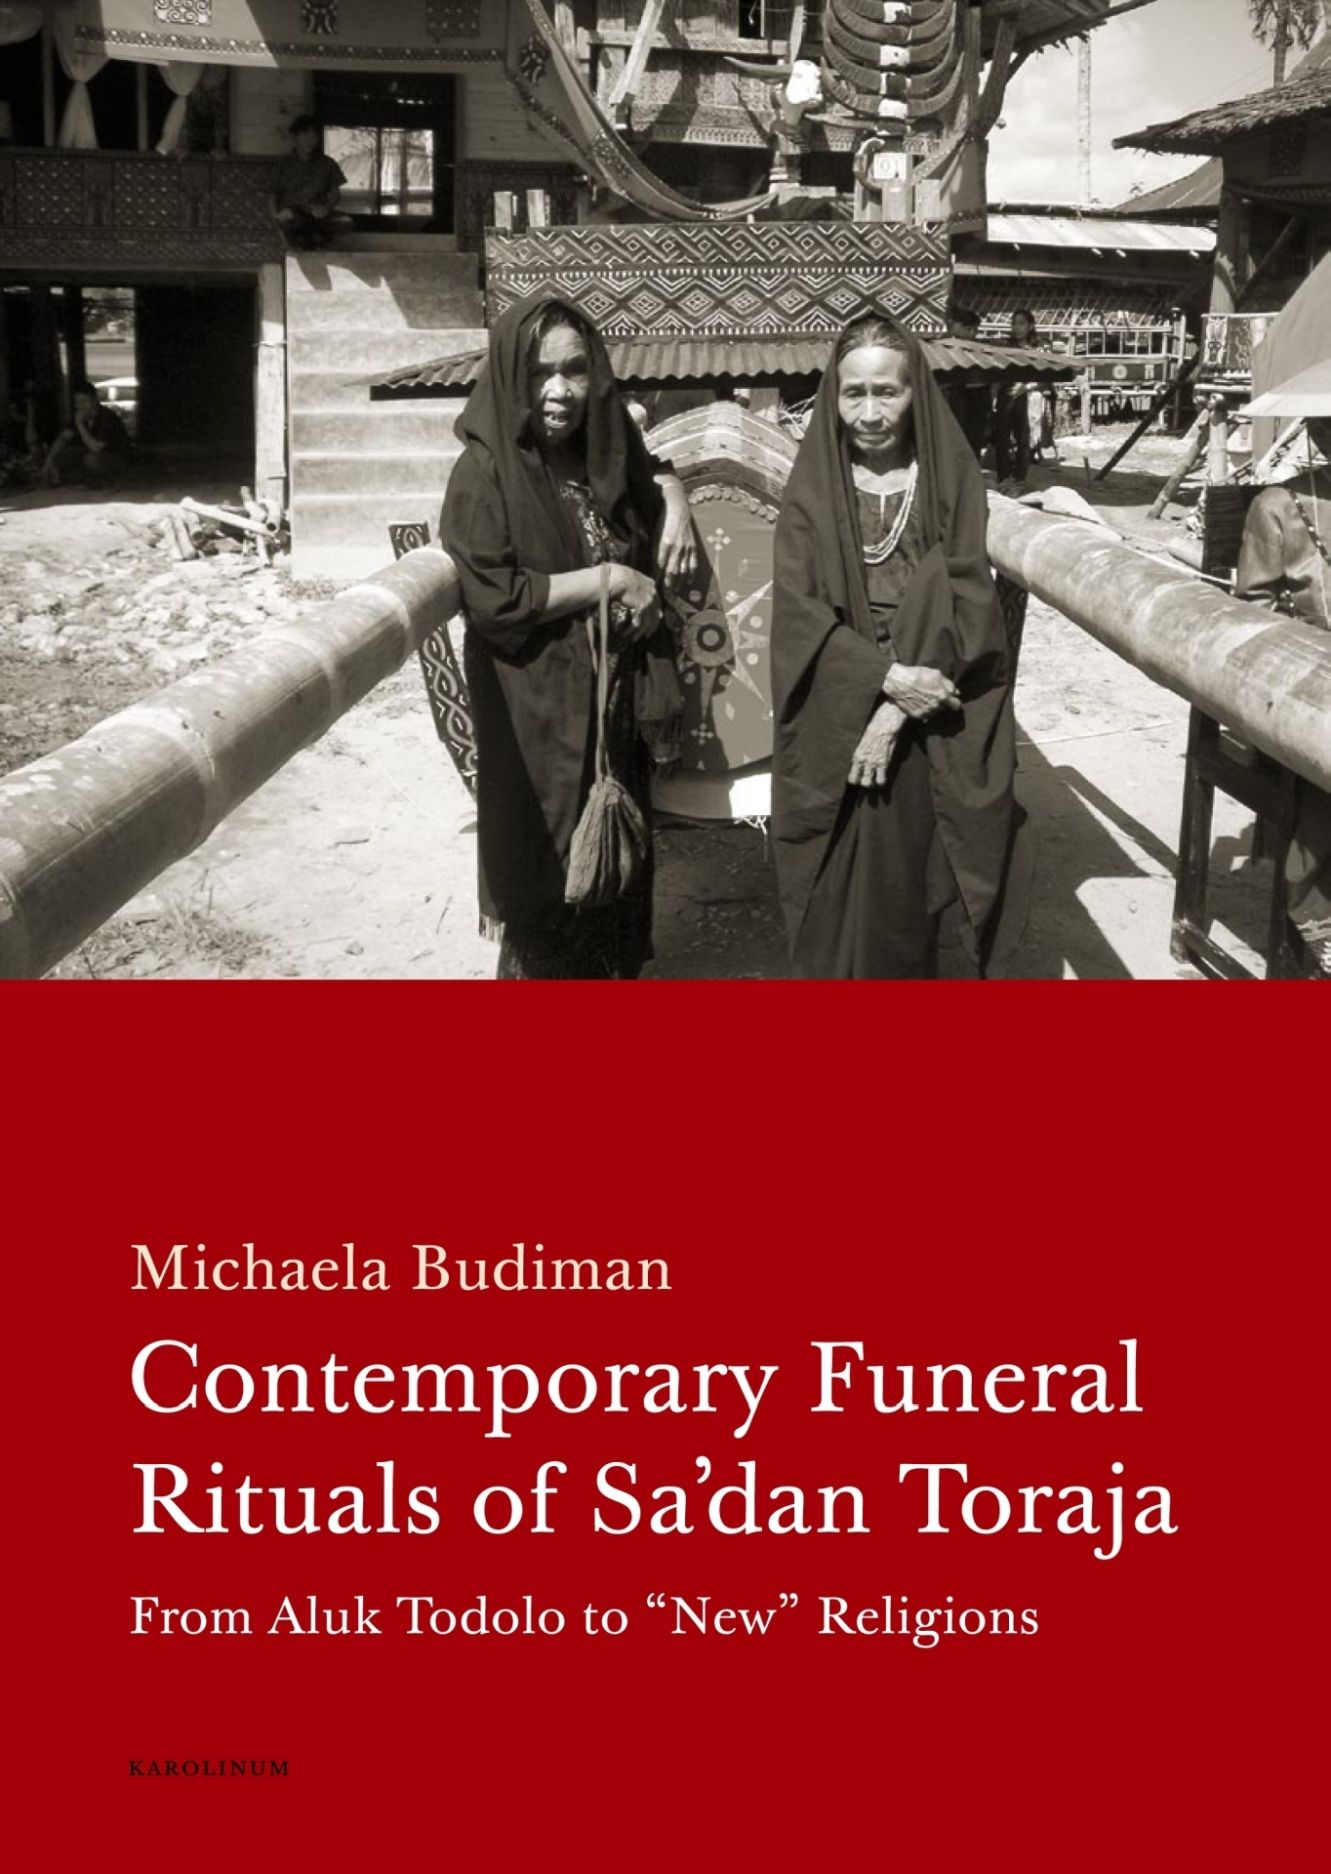 Contemporary Funeral Rituals of Sa'dan Toraja